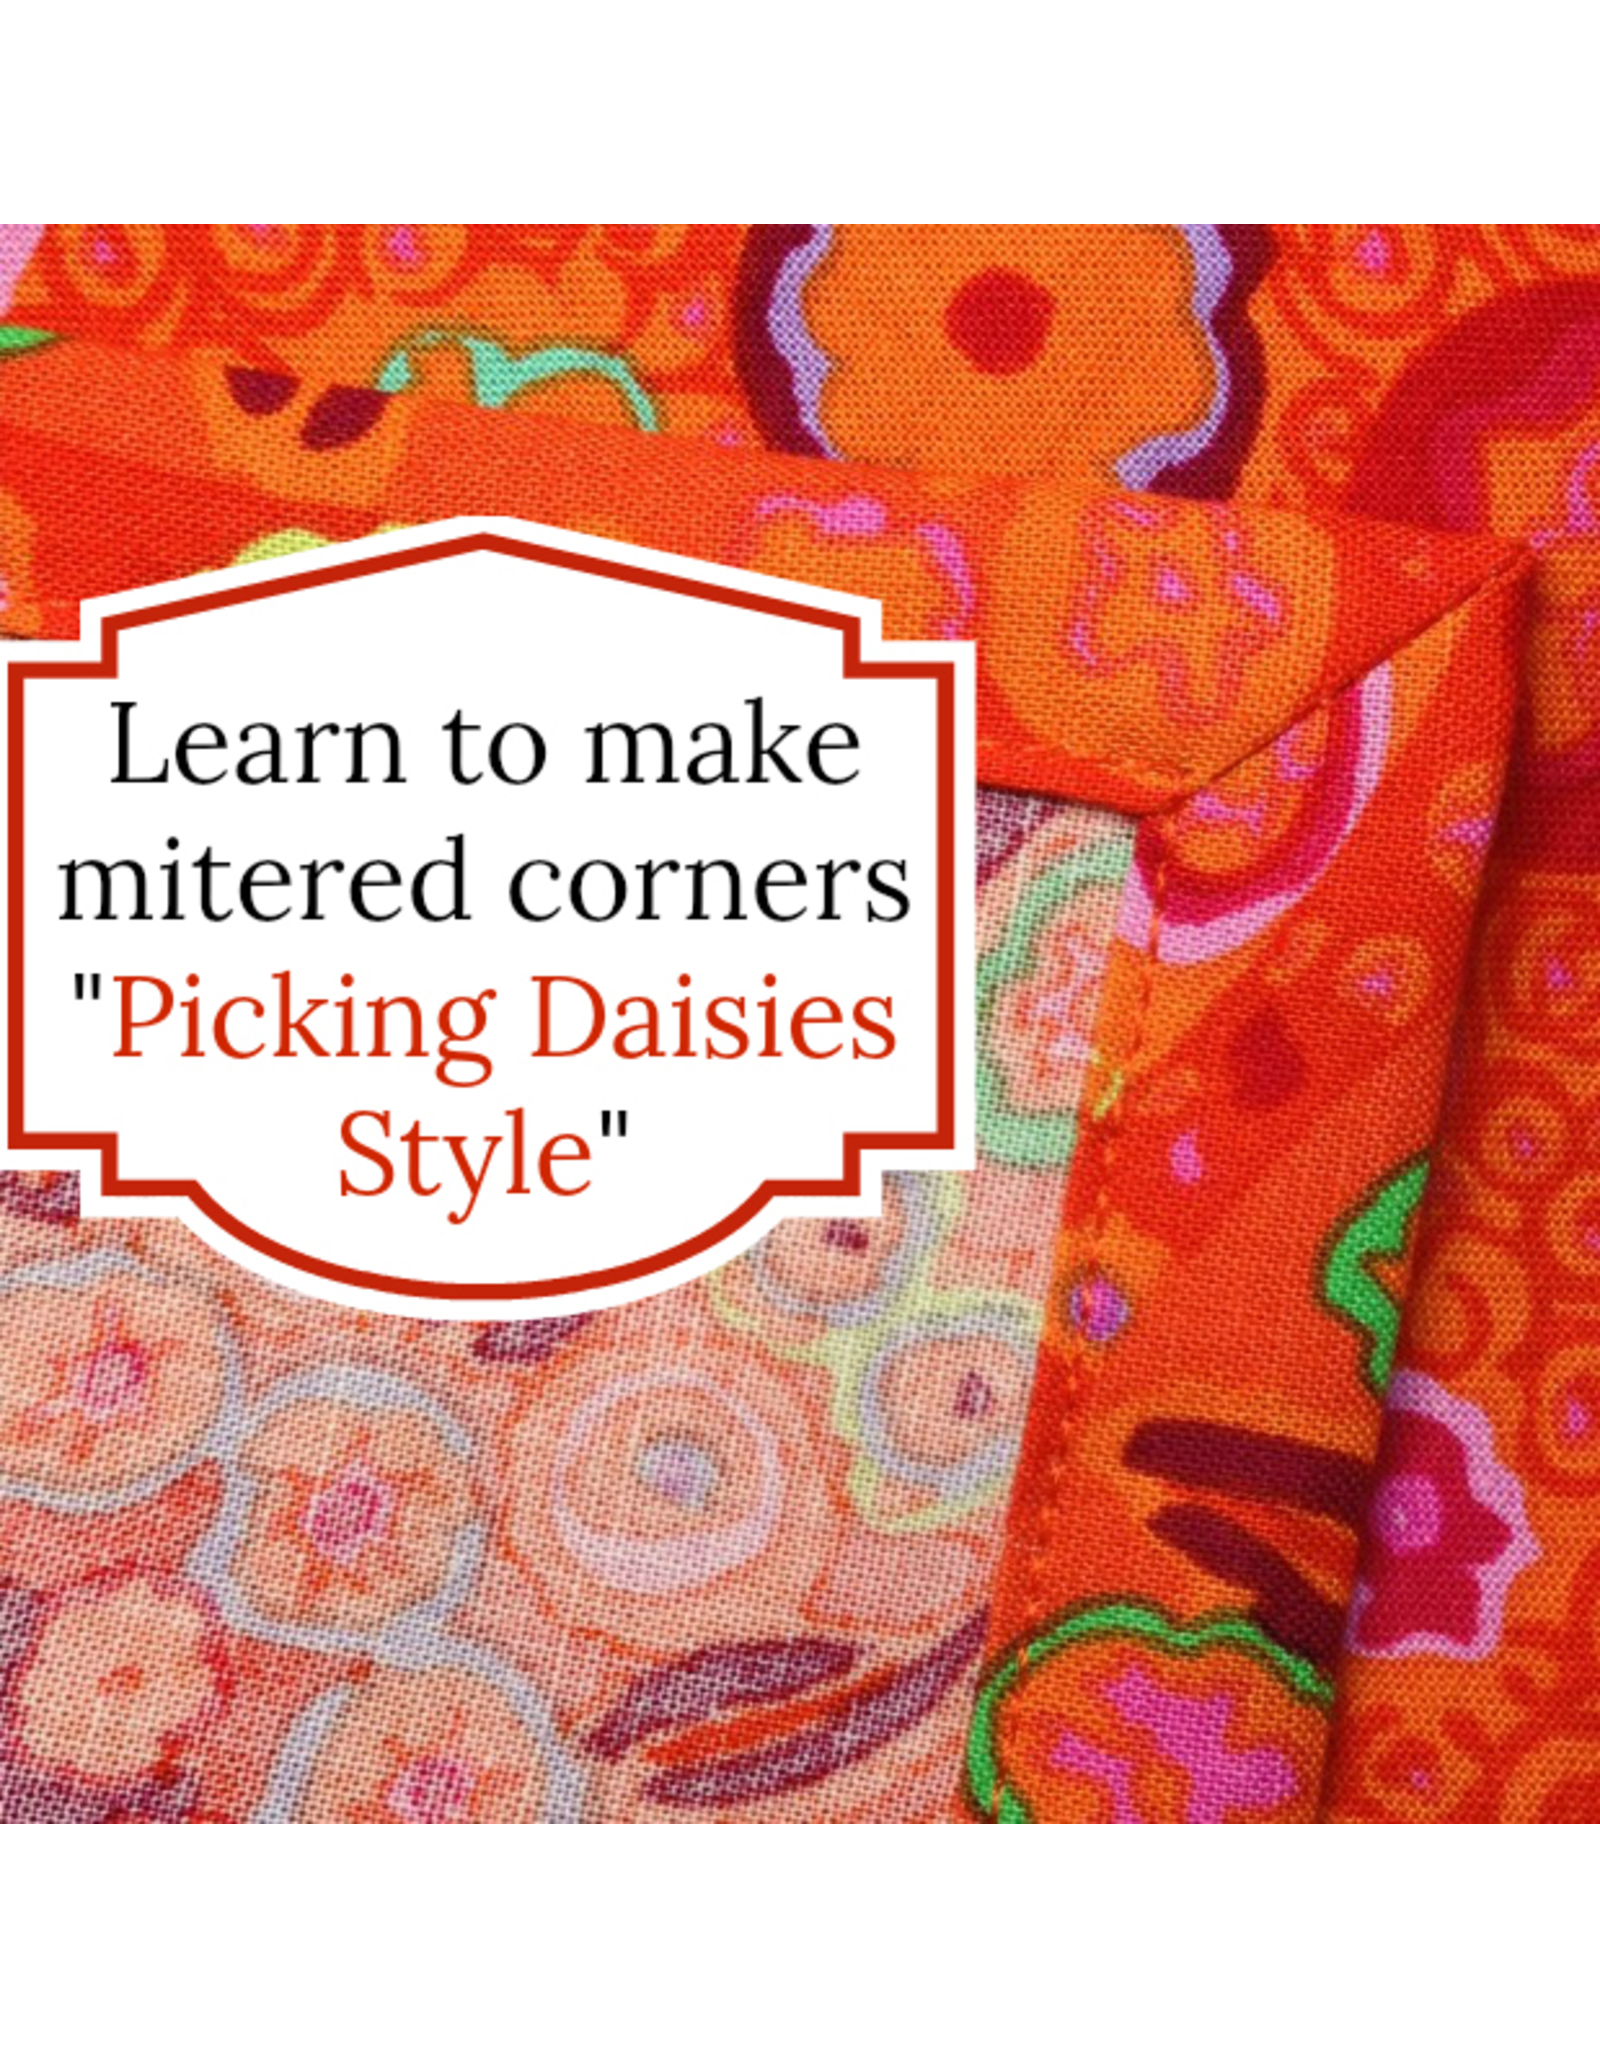 Picking Daisies Kit for Dinner Napkin Making - Your Choice of Fabric + Coordinating Thread to make 6 dinner napkins with mitered corners